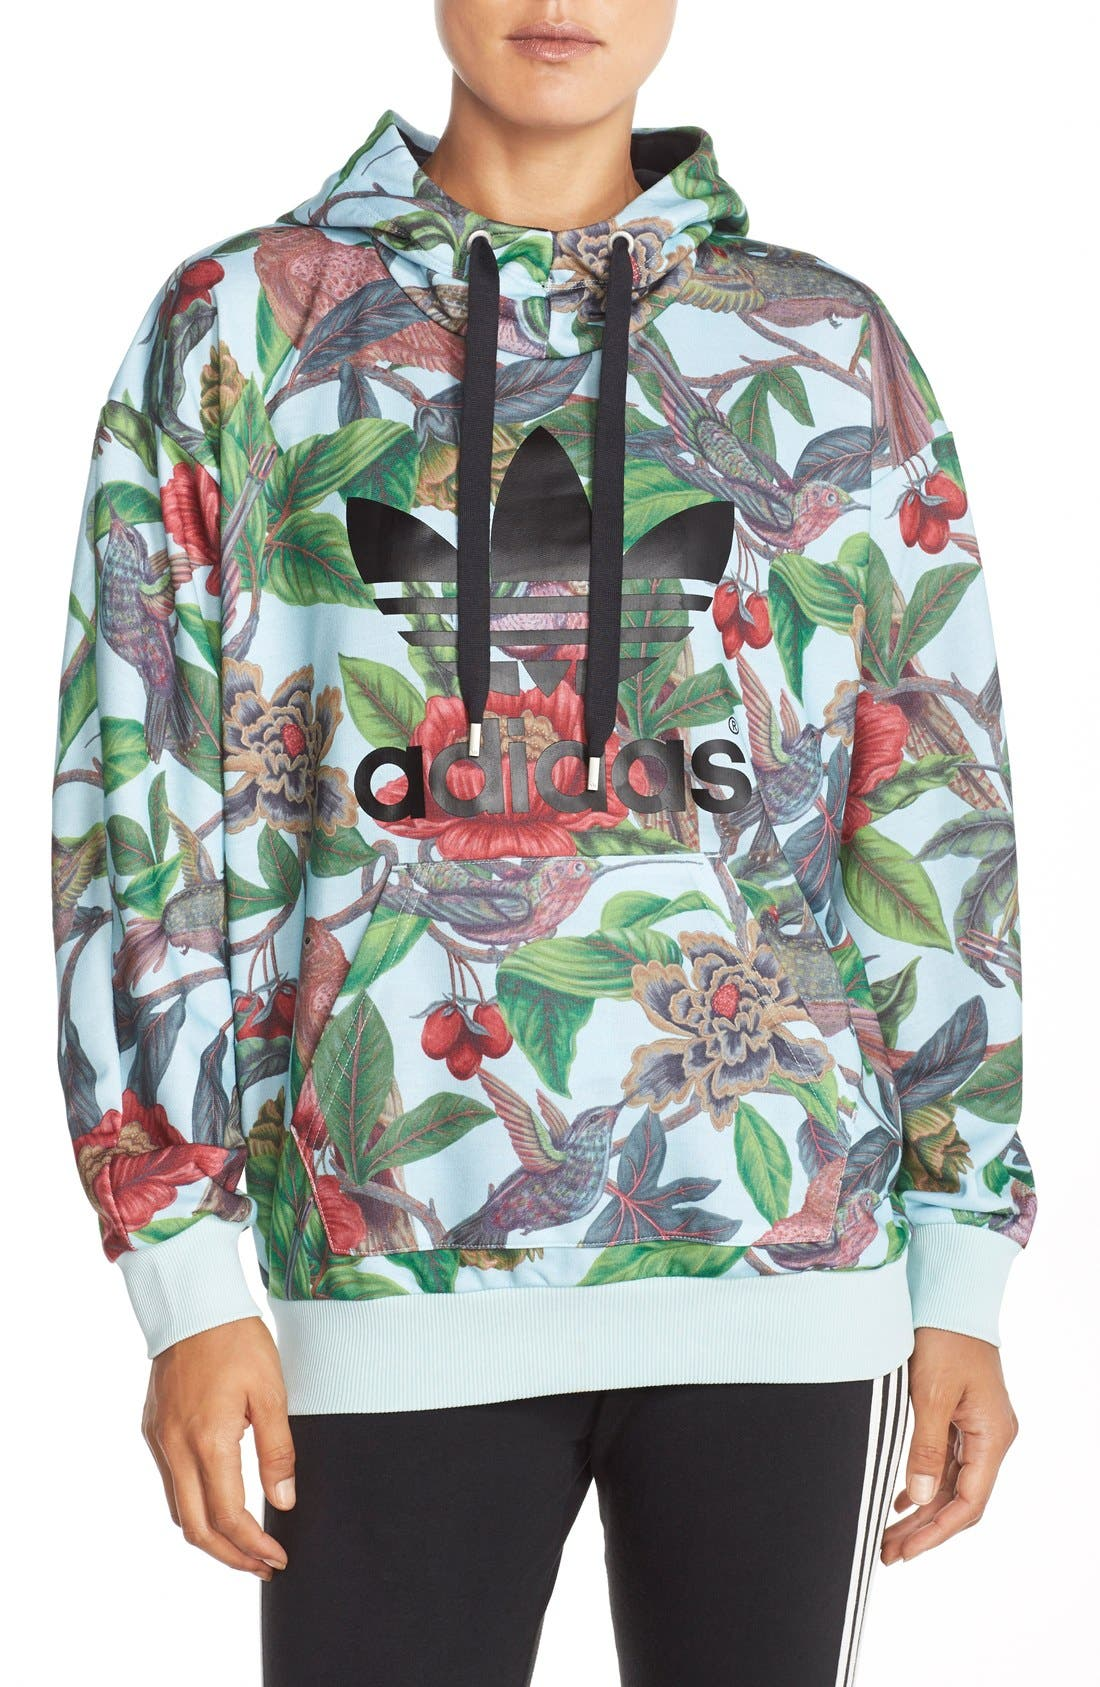 Main Image - adidas Originals 'Florera - Battle of the Birds' Hoodie